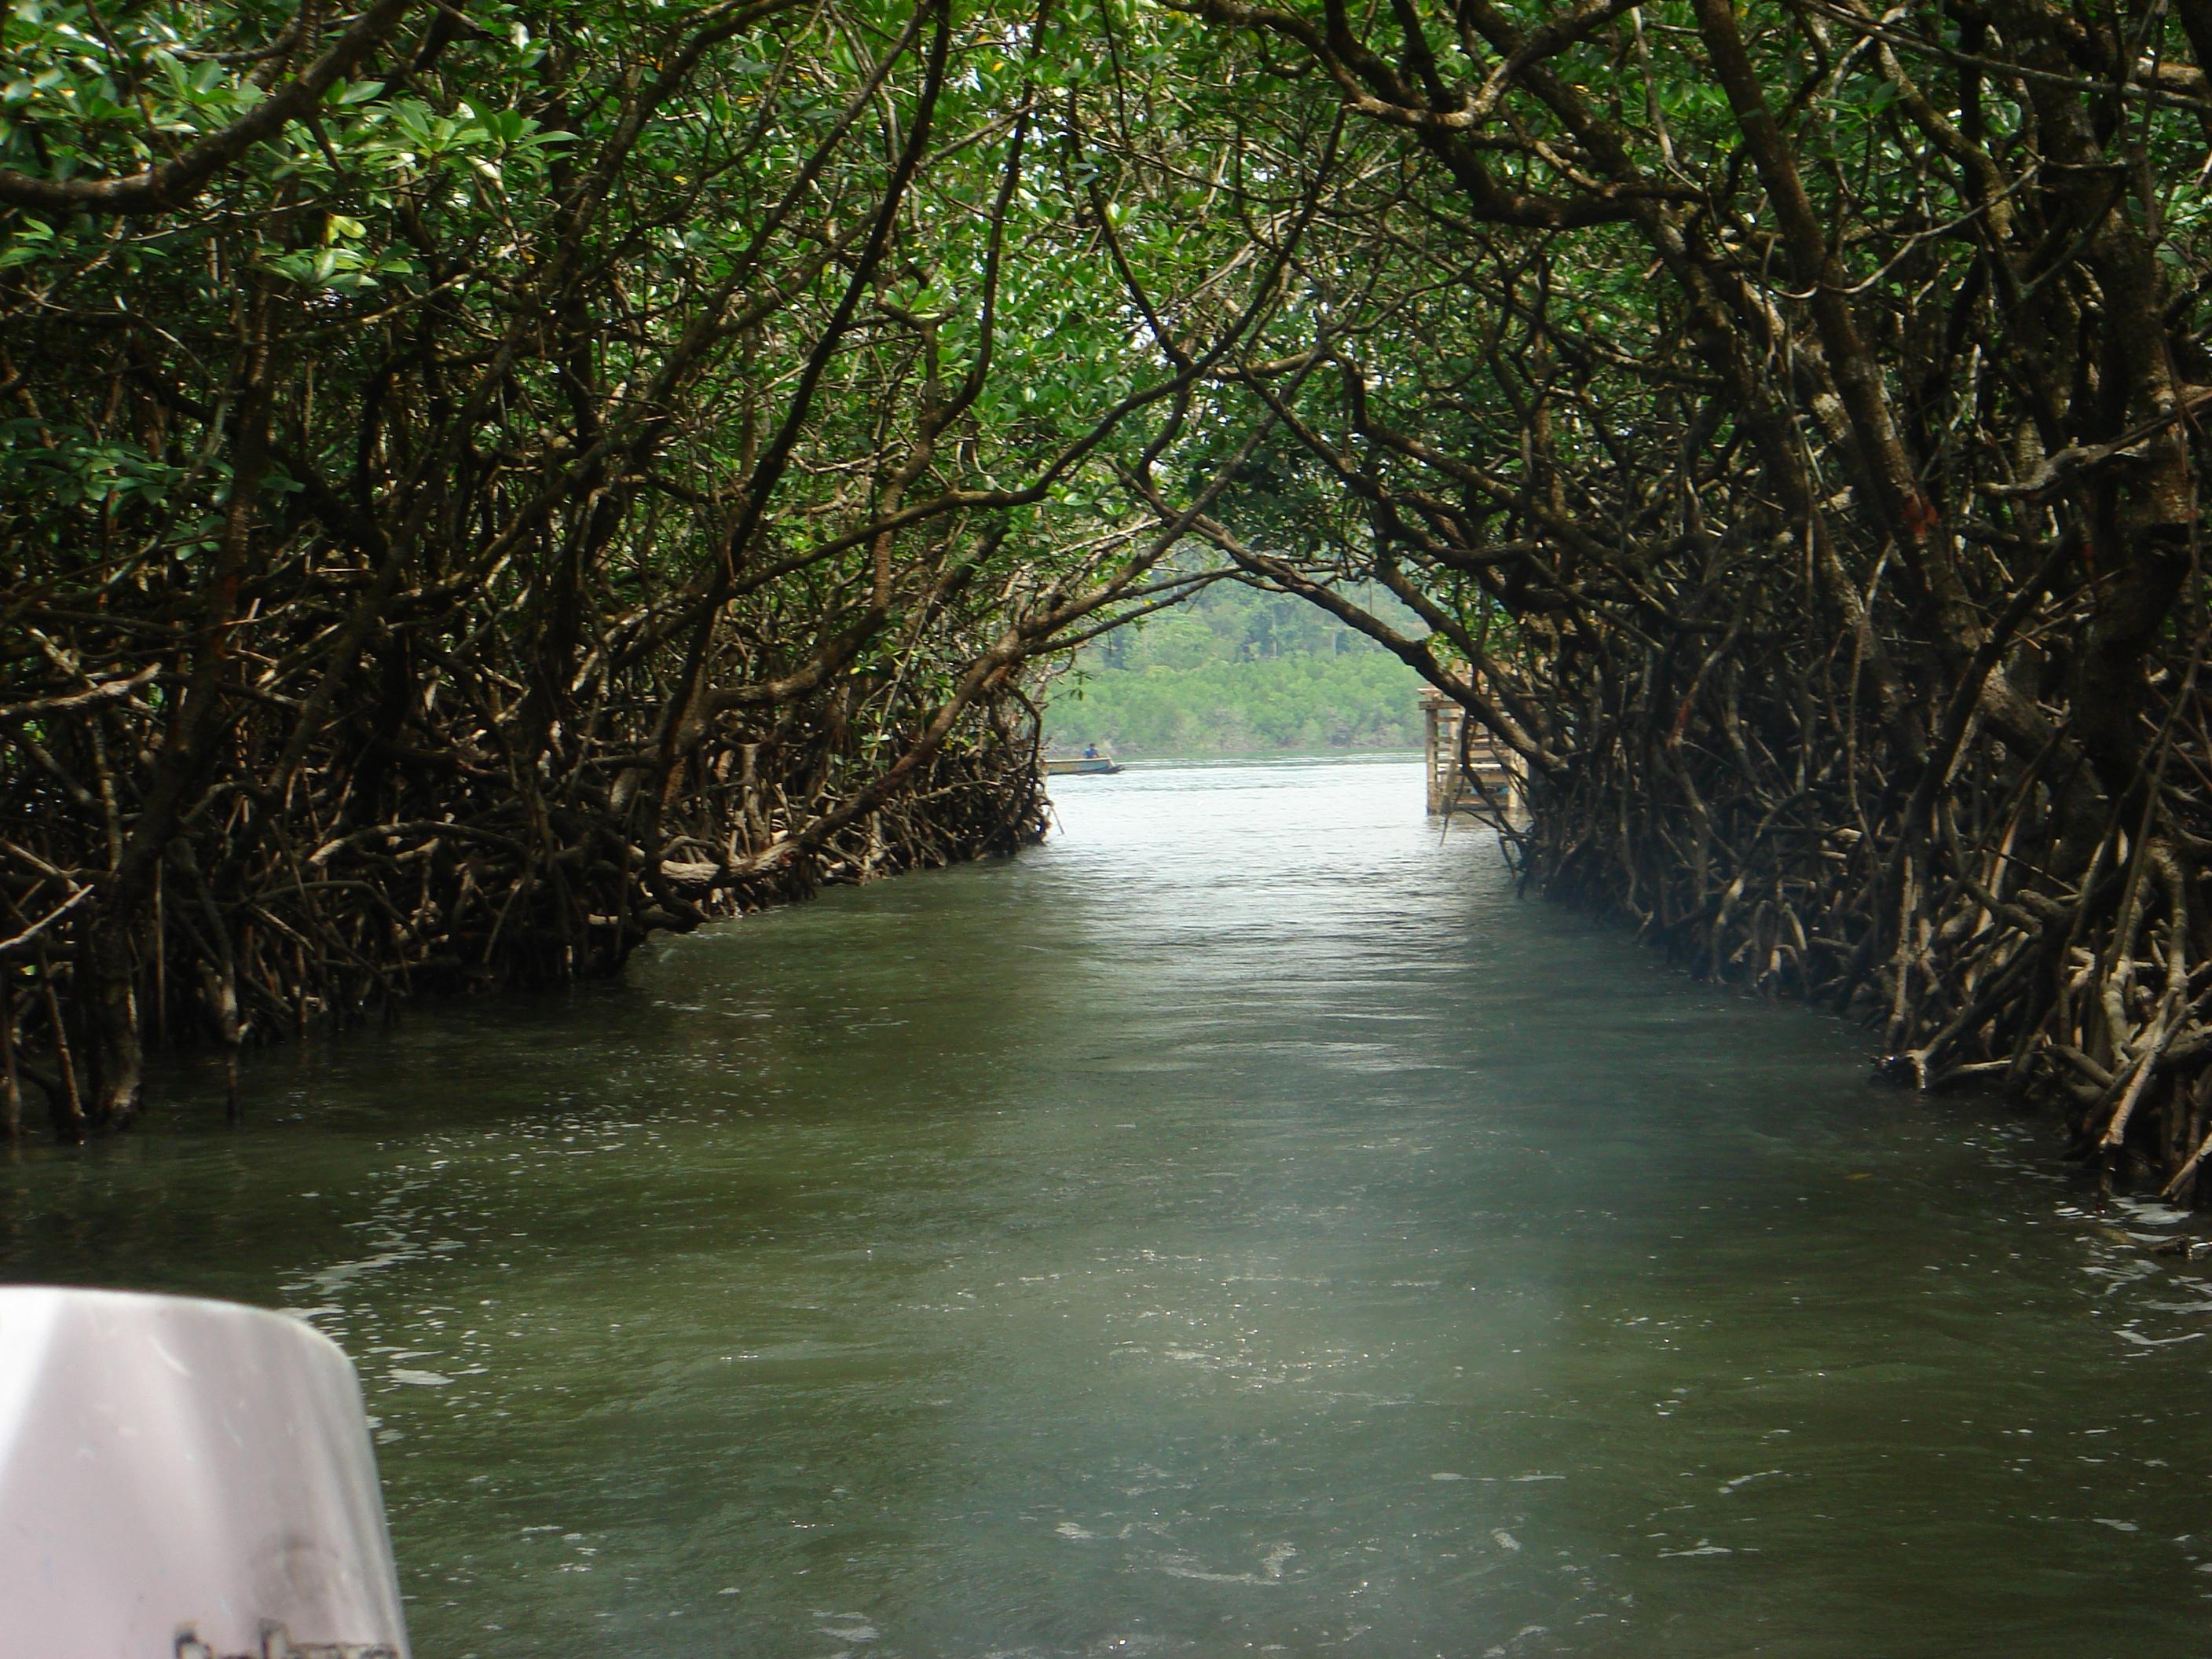 Mangroves at Baratang, Andaman Islands